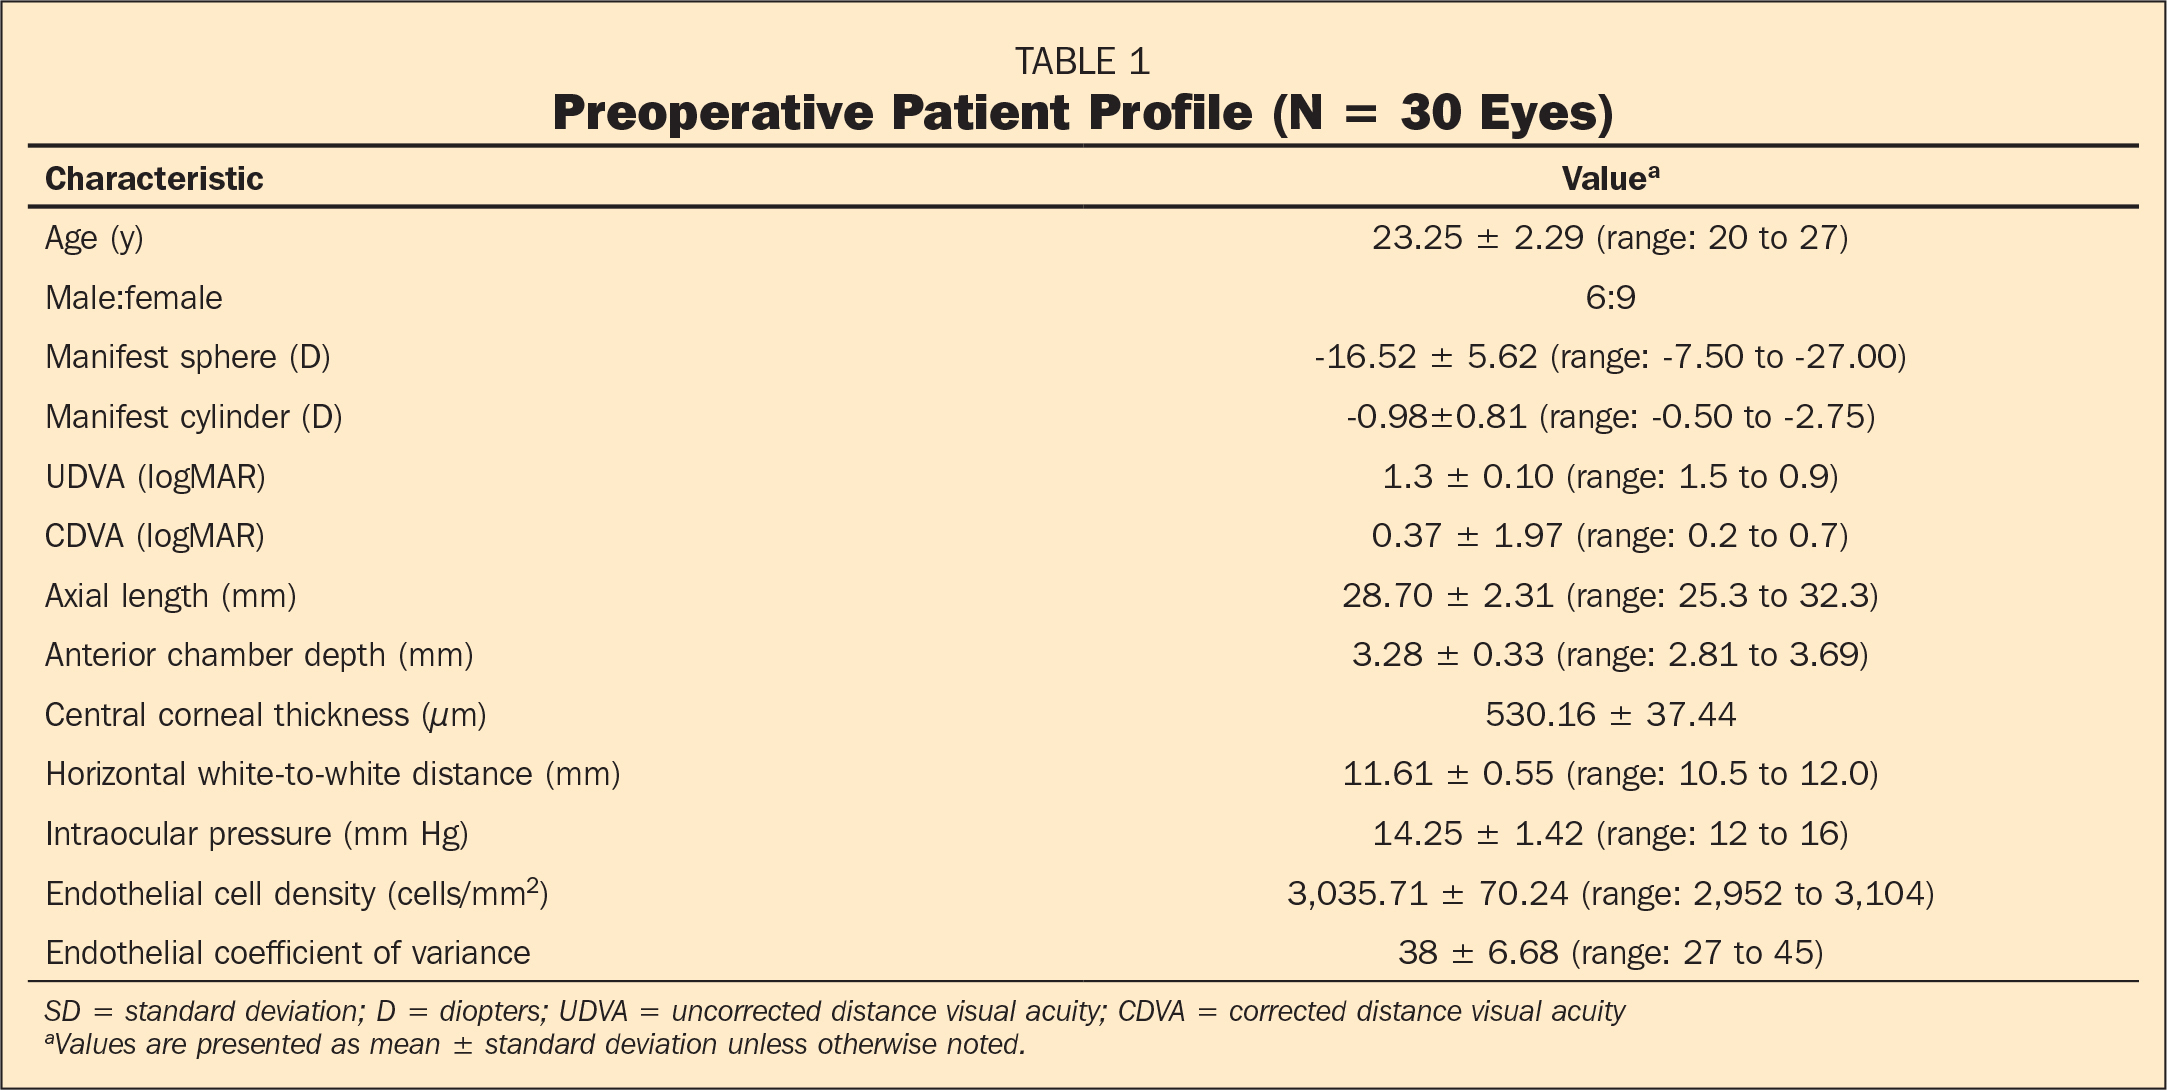 Preoperative Patient Profile (N = 30 Eyes)